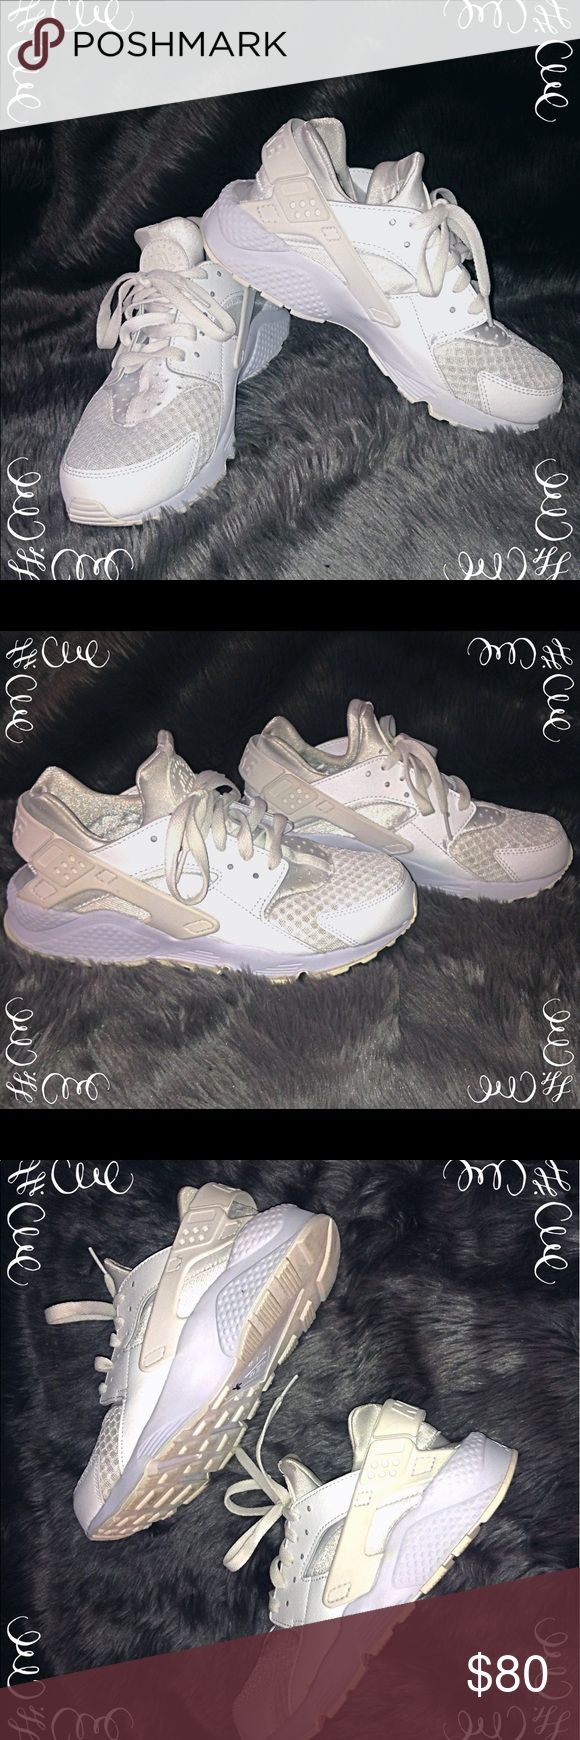 👟 White Nike Huaraches👟 All white Nike Huaraches!! Size 8! Lightly used, worn maybe 4 times. In perfect condition! Originally priced at $110! Nike Shoes Sneakers